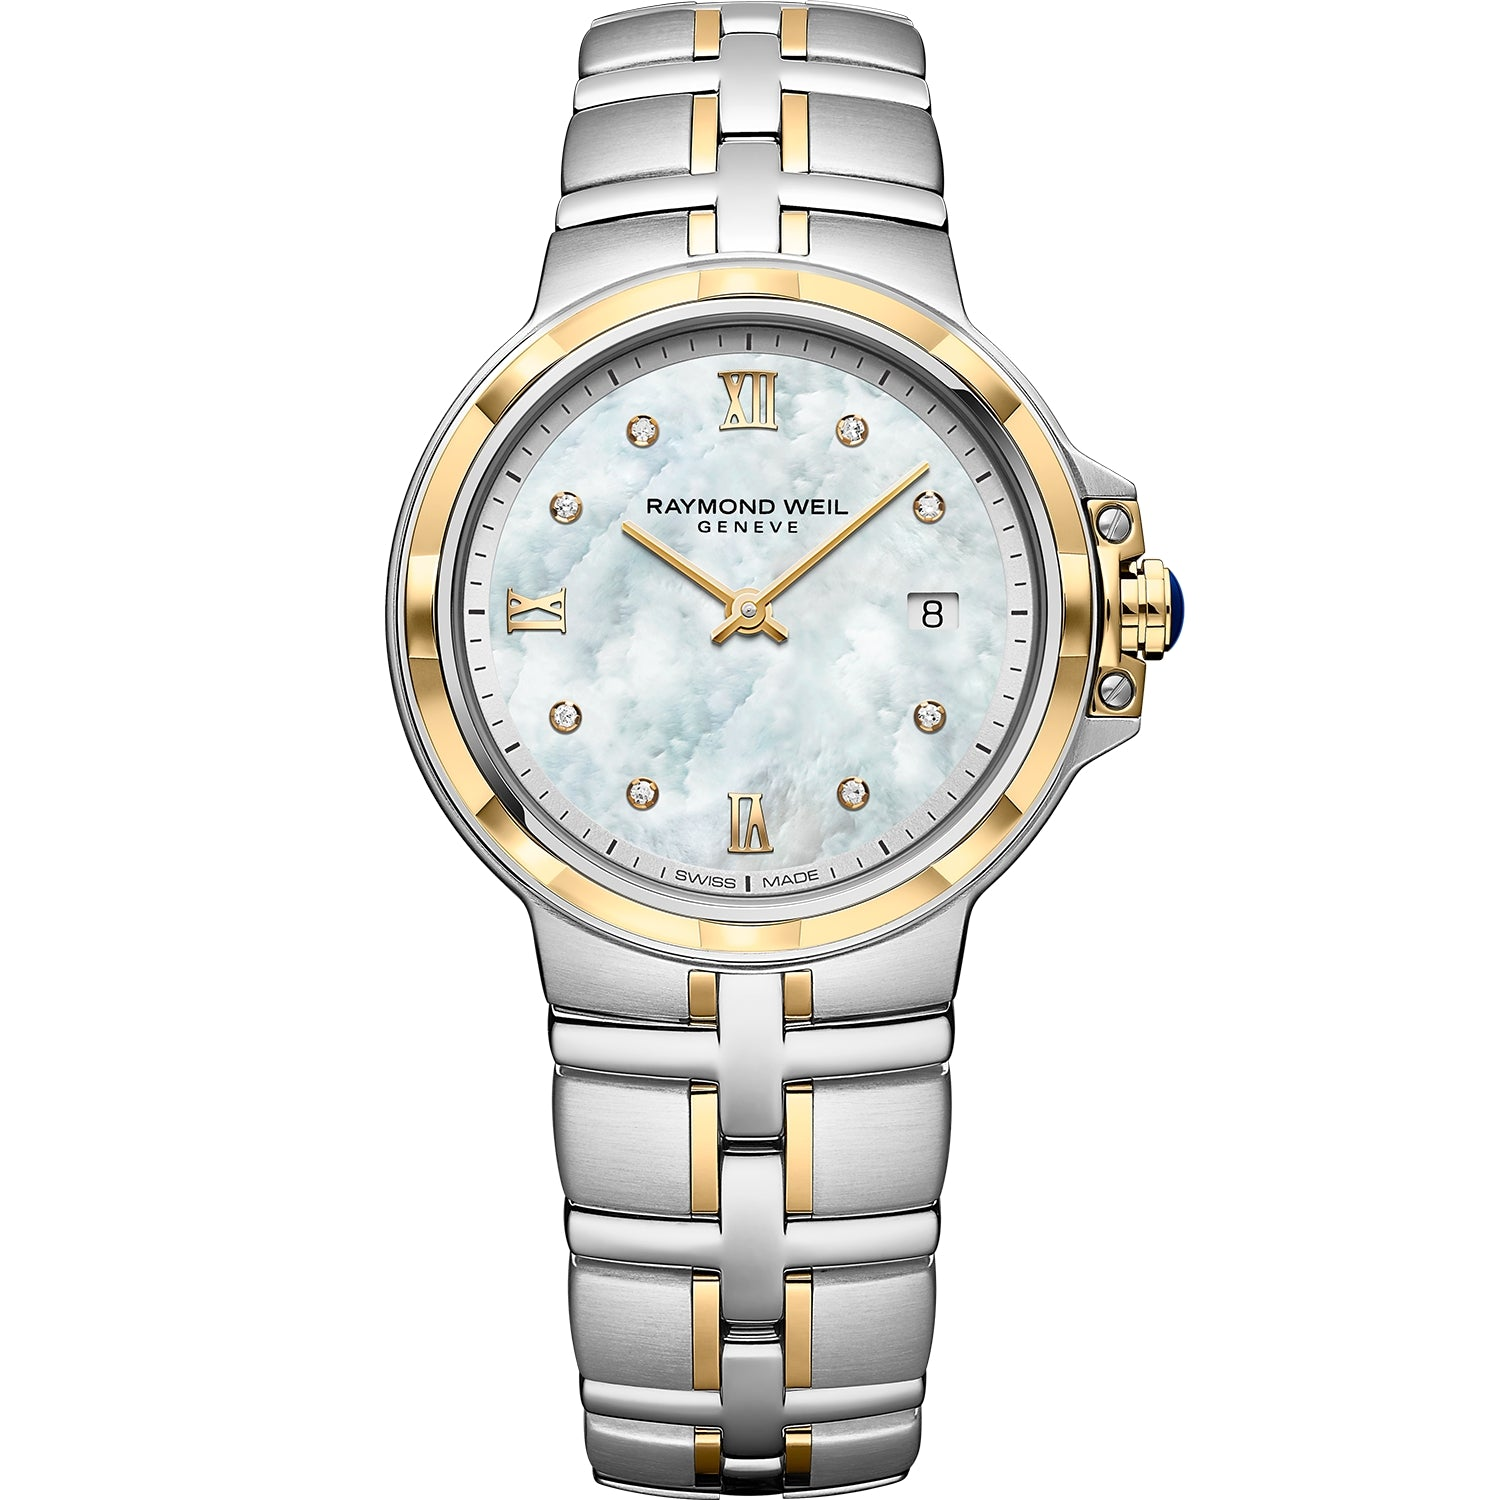 Parsifal Ladies Quartz Classic 8 Diamond Dial Watch 5180 -STP-00995